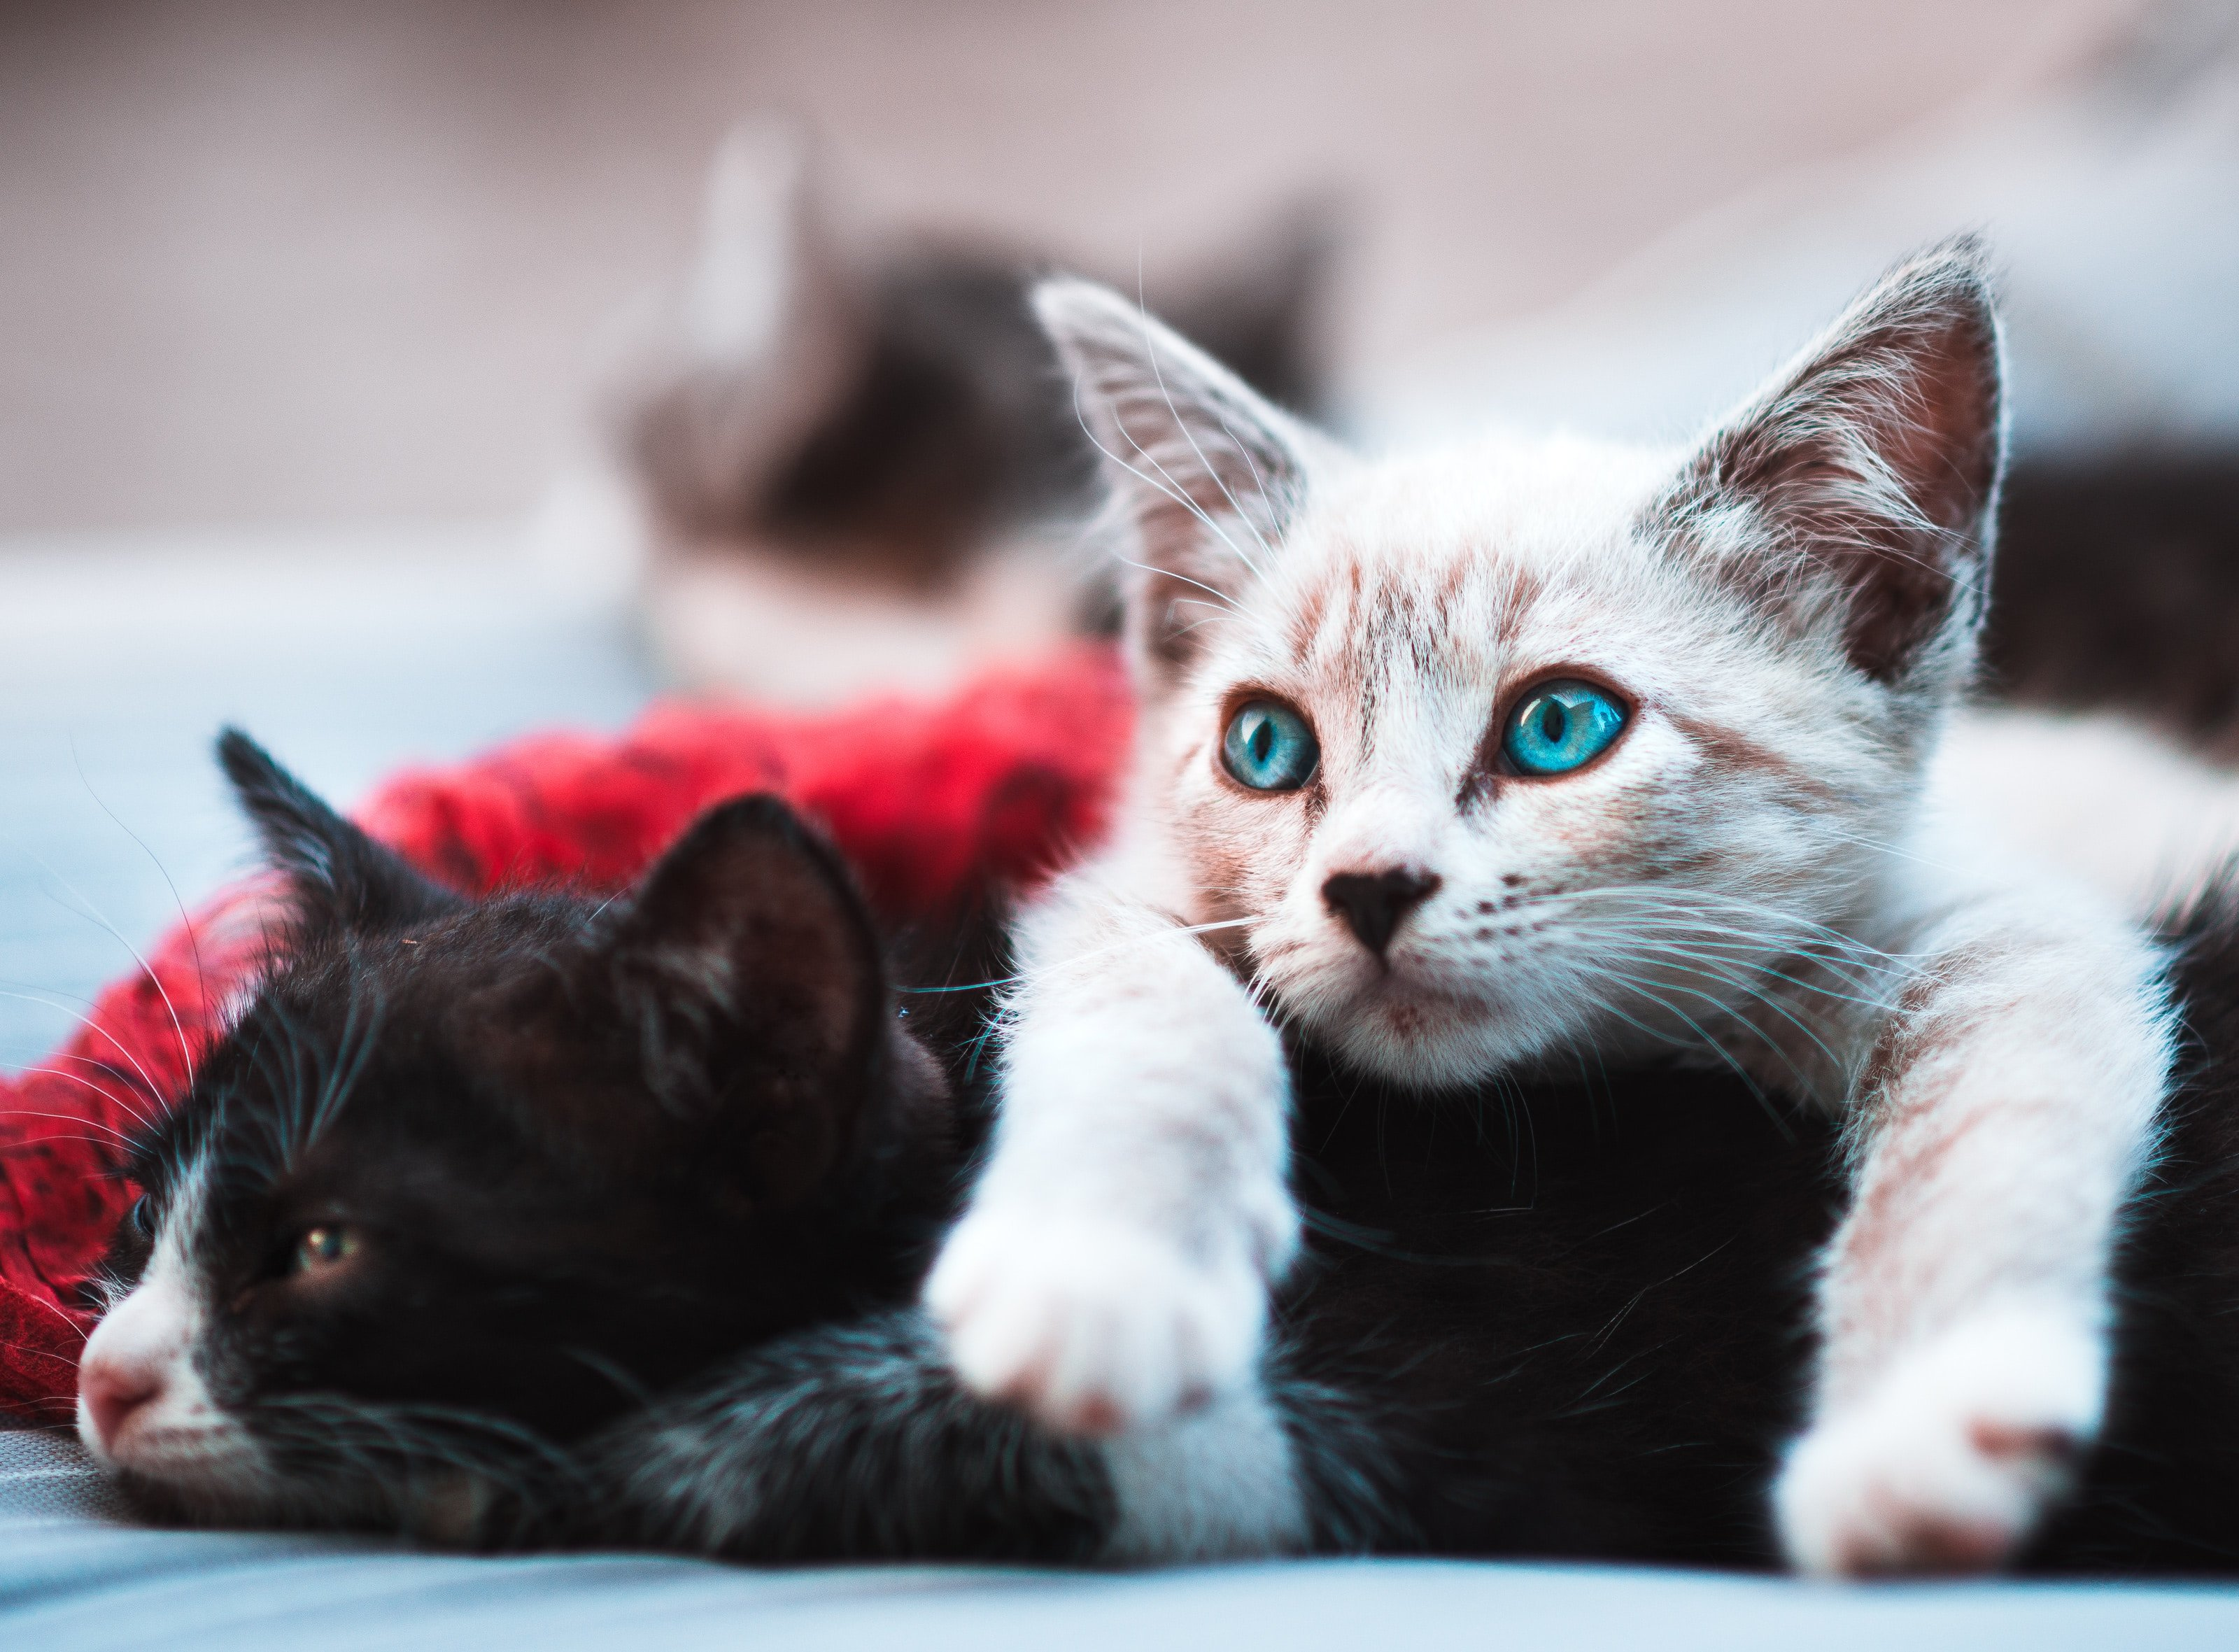 A couple of cats | | Source: Unsplash.com